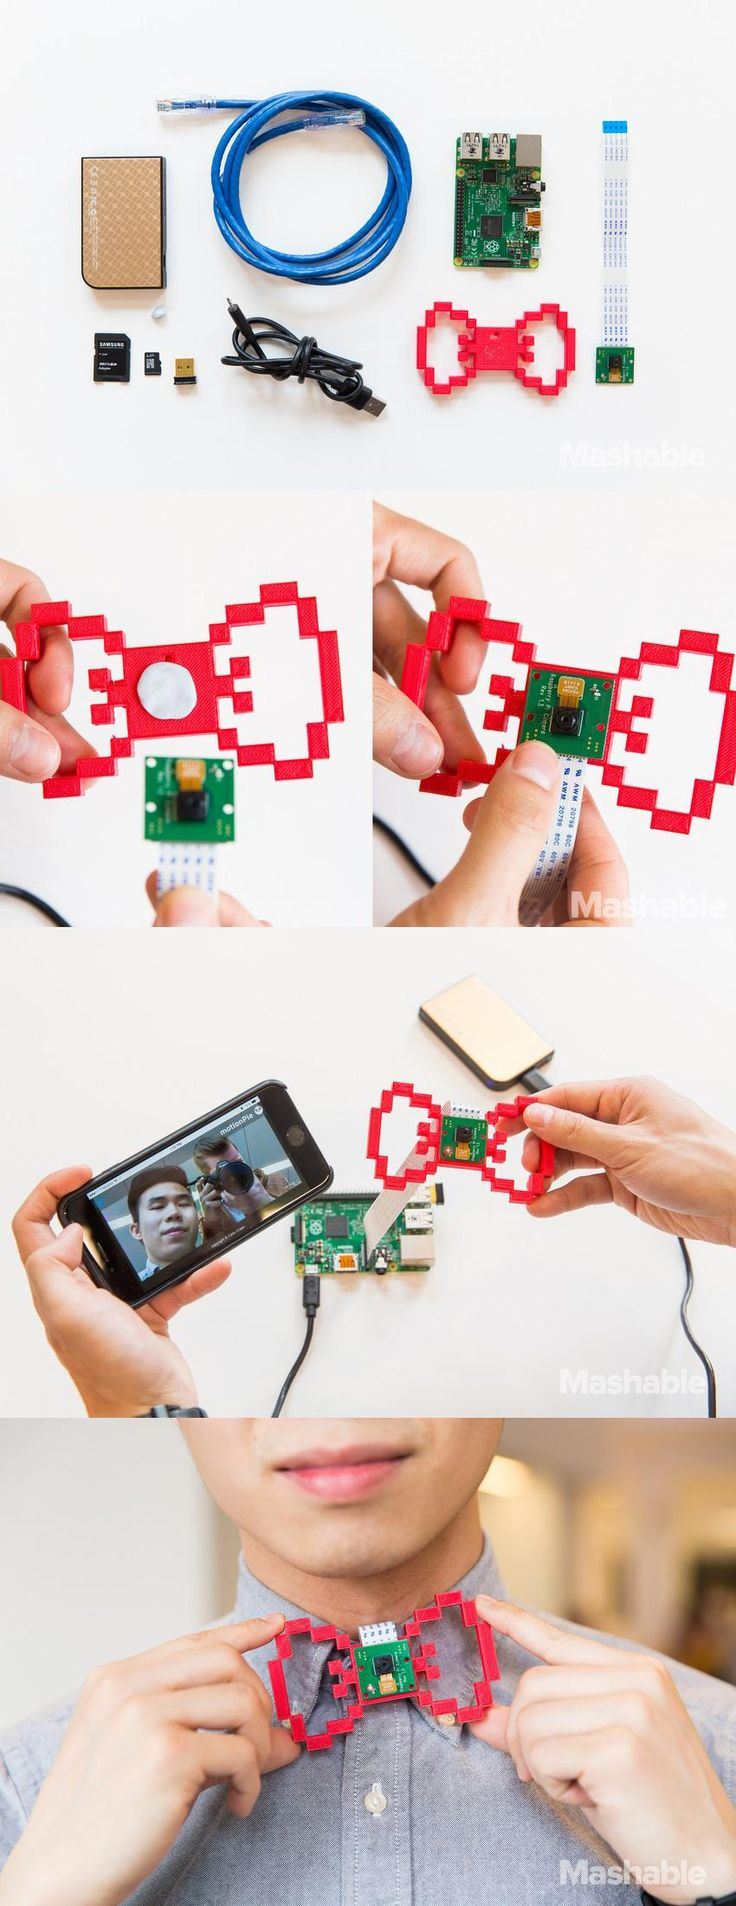 72 Best 3d Printing Images On Pinterest Fashion Printed And Flexible Circuit Board Filacart Blog Megastore Heres How To Build A Bowtie Spy Camera With Raspberry